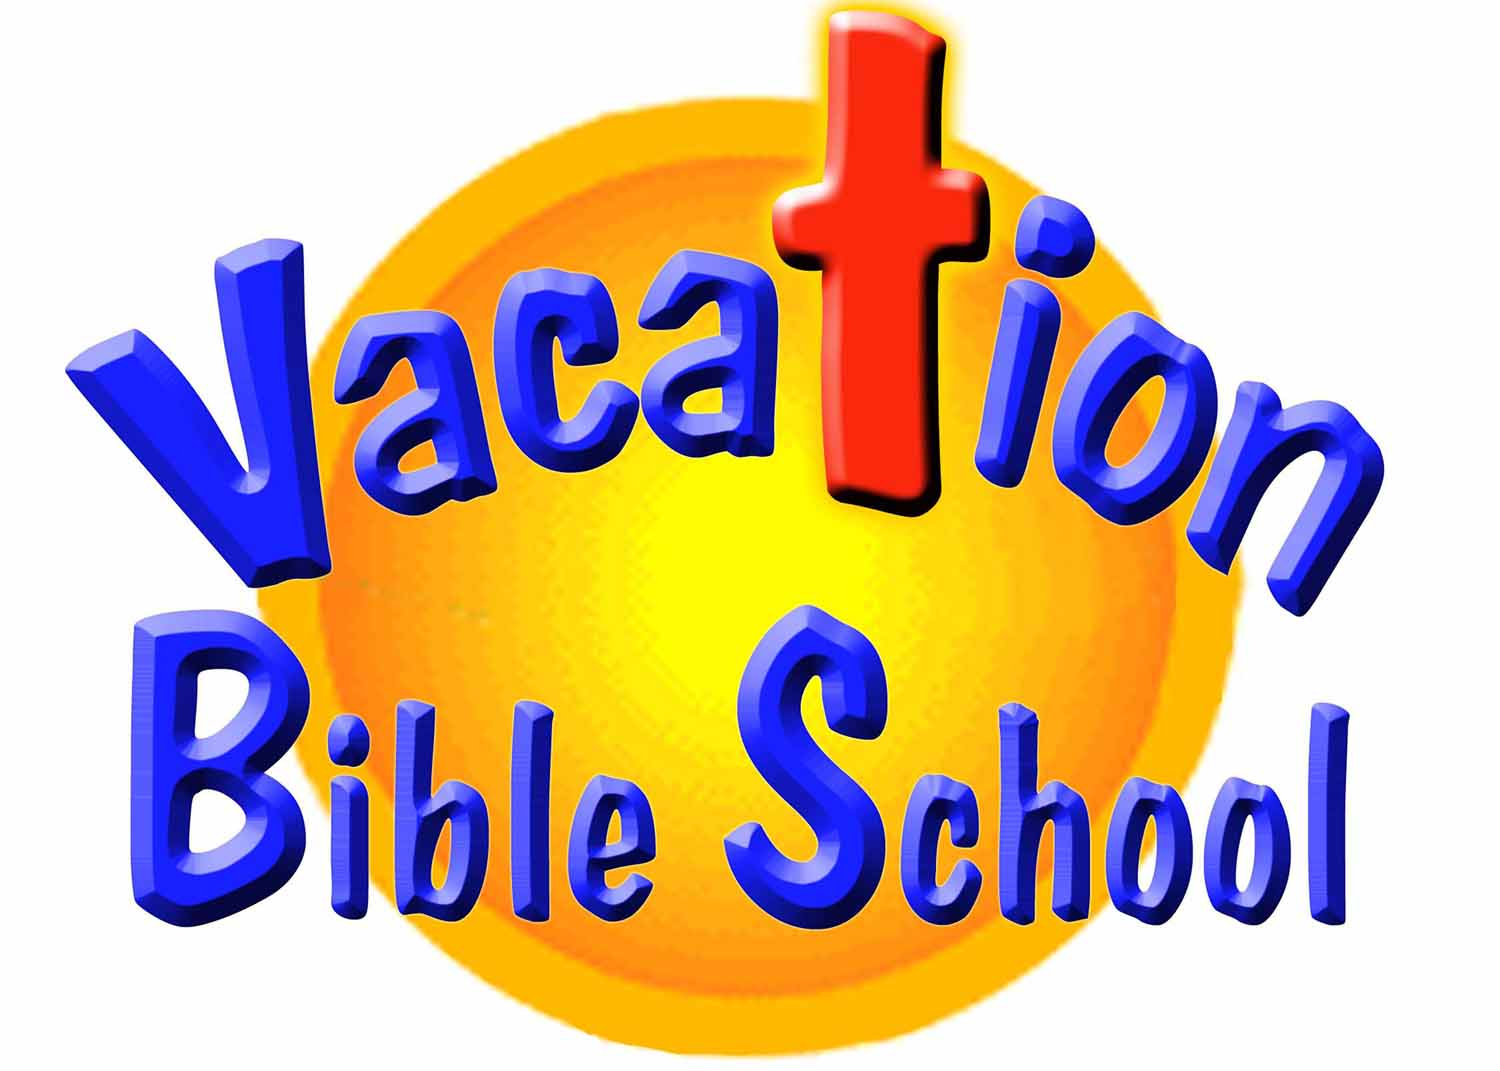 Free Vbs Registration Cliparts, Download Free Clip Art, Free.